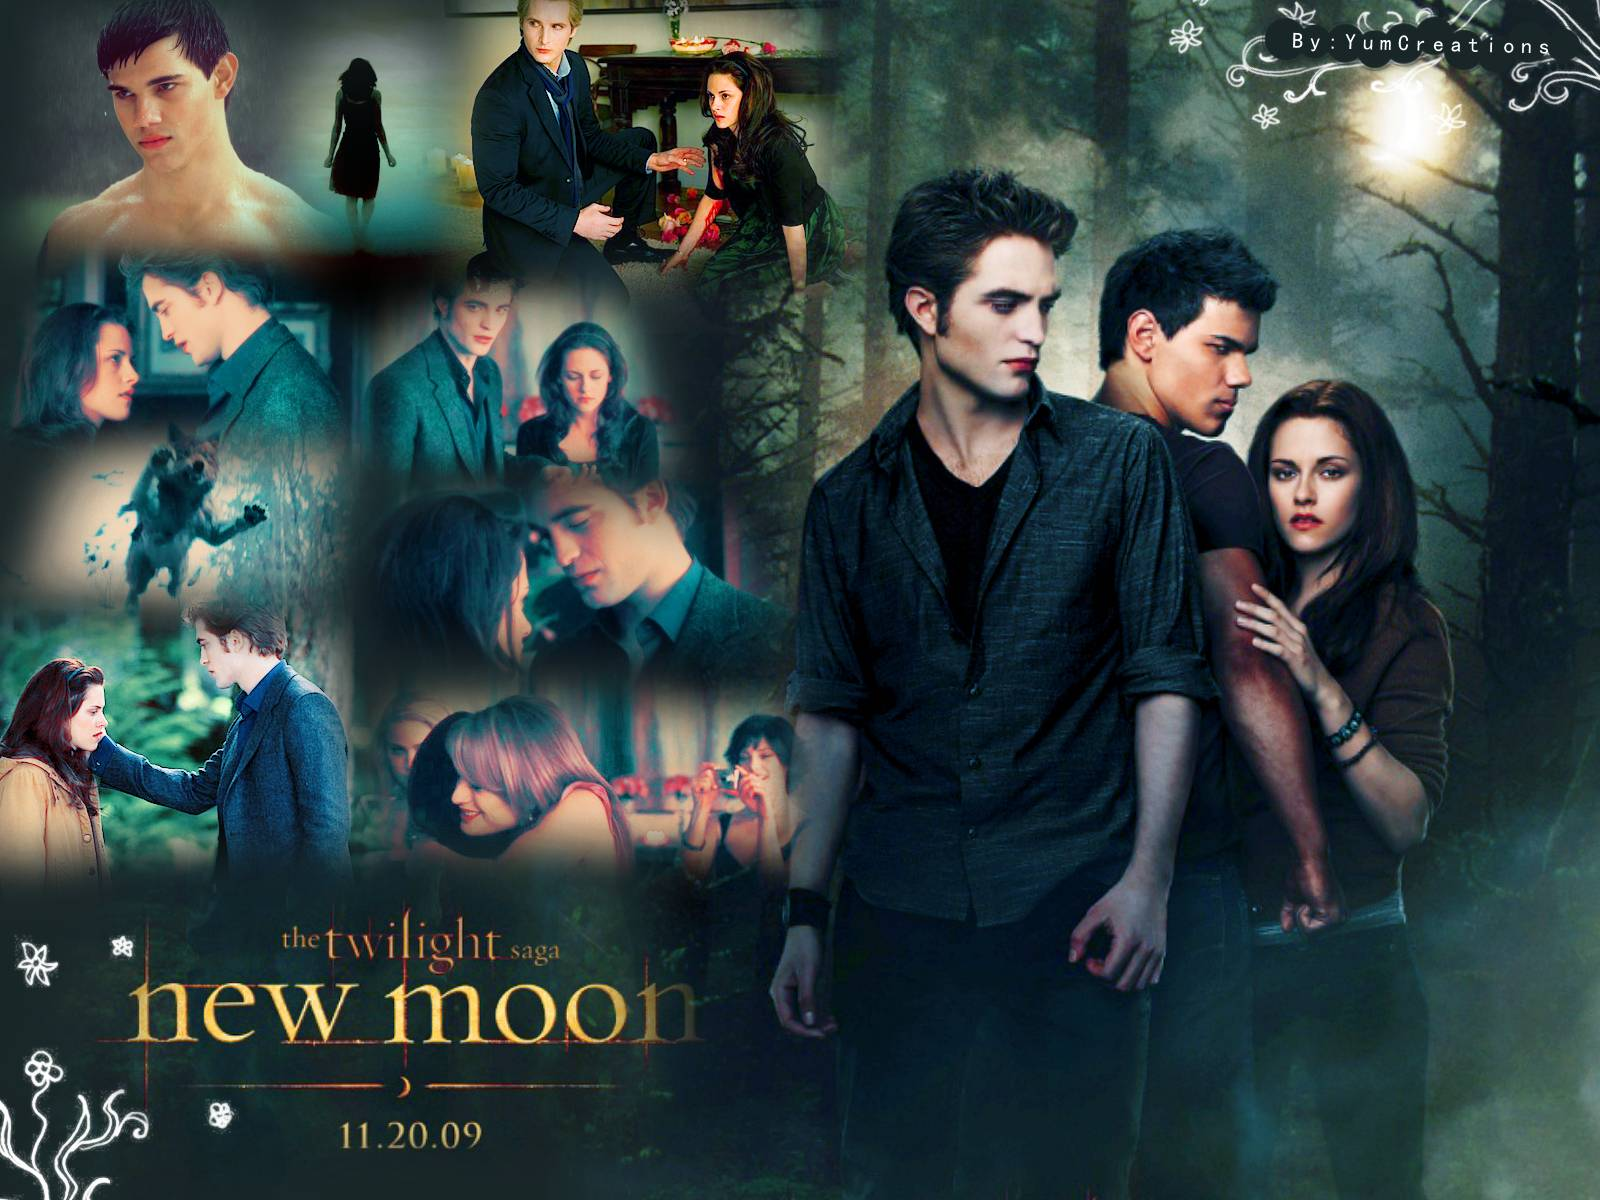 new moon wallpapers - wallpaper cave